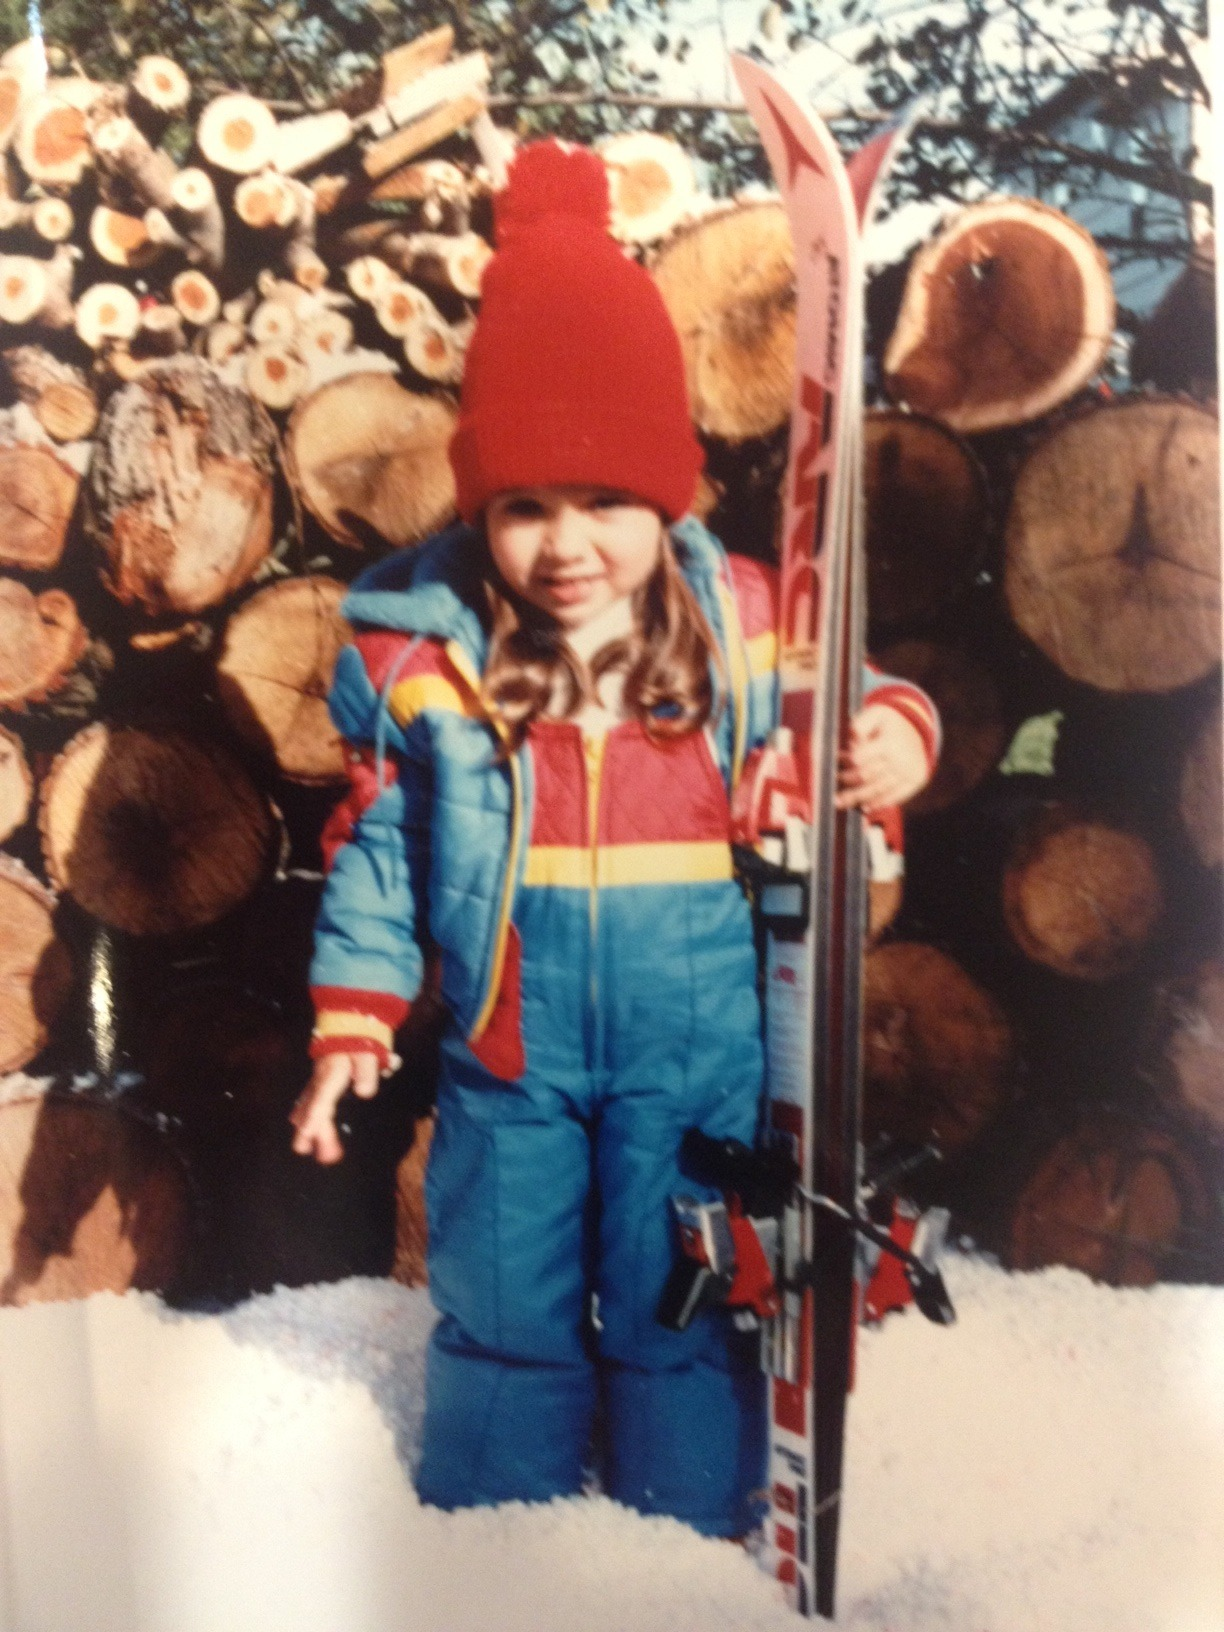 I was once a very tiny skier.